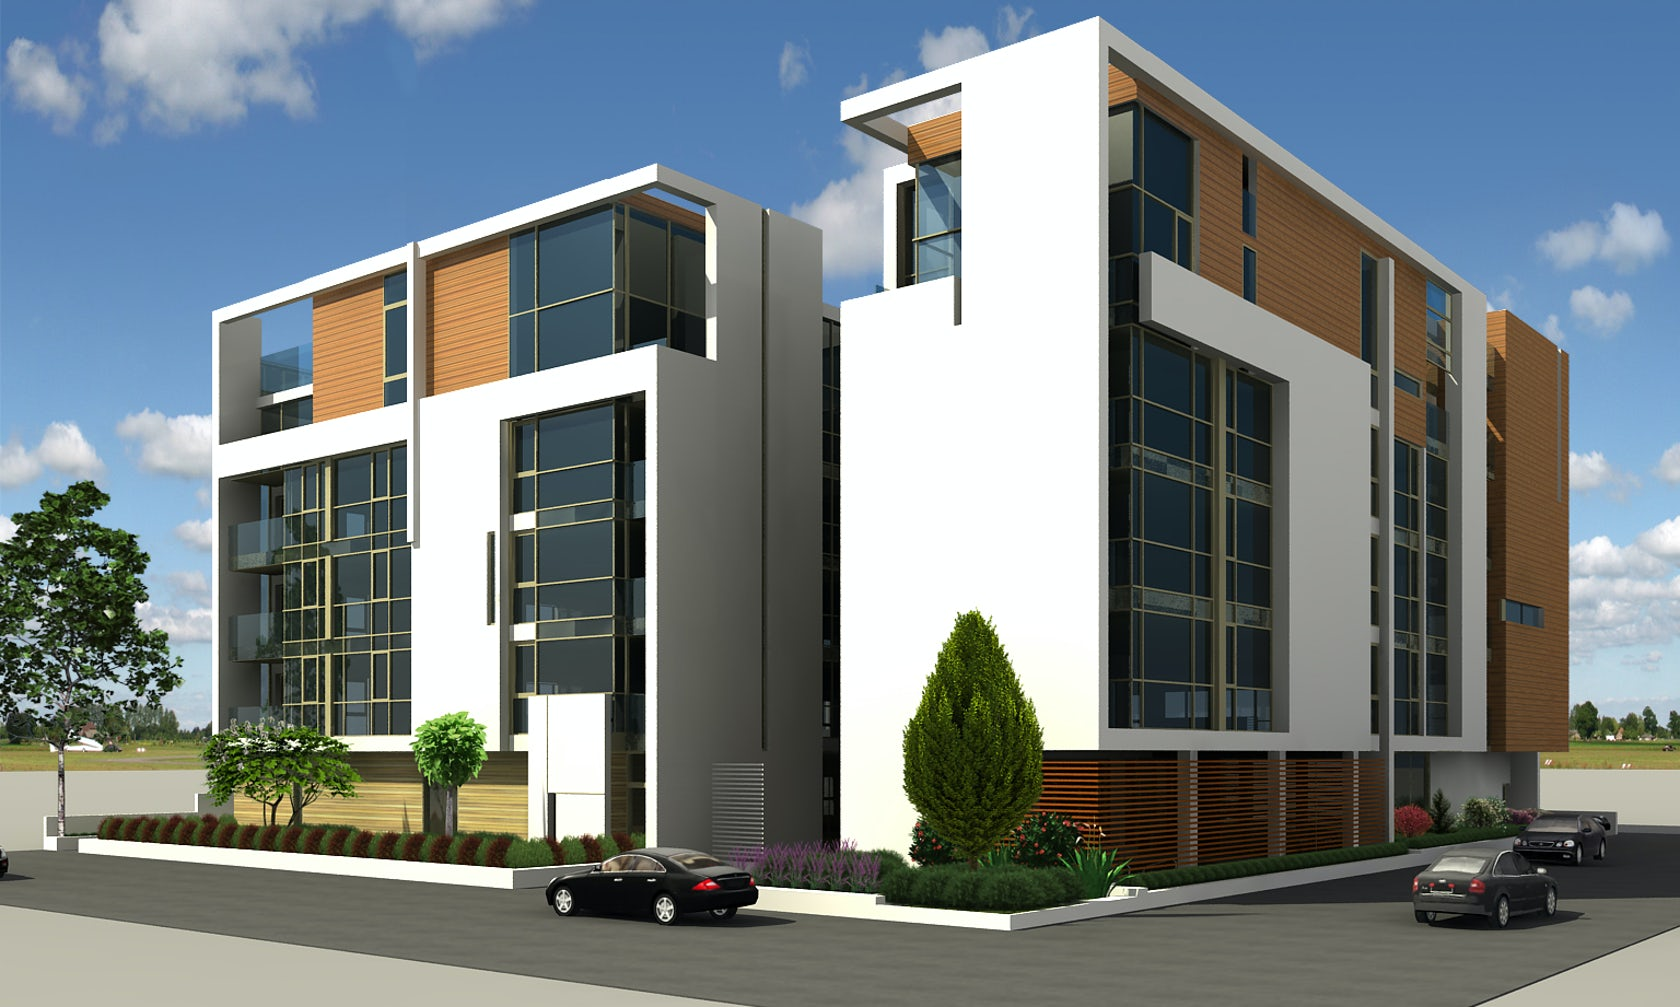 3d architectural rendering building models architizer - Icon exterior building solutions ...